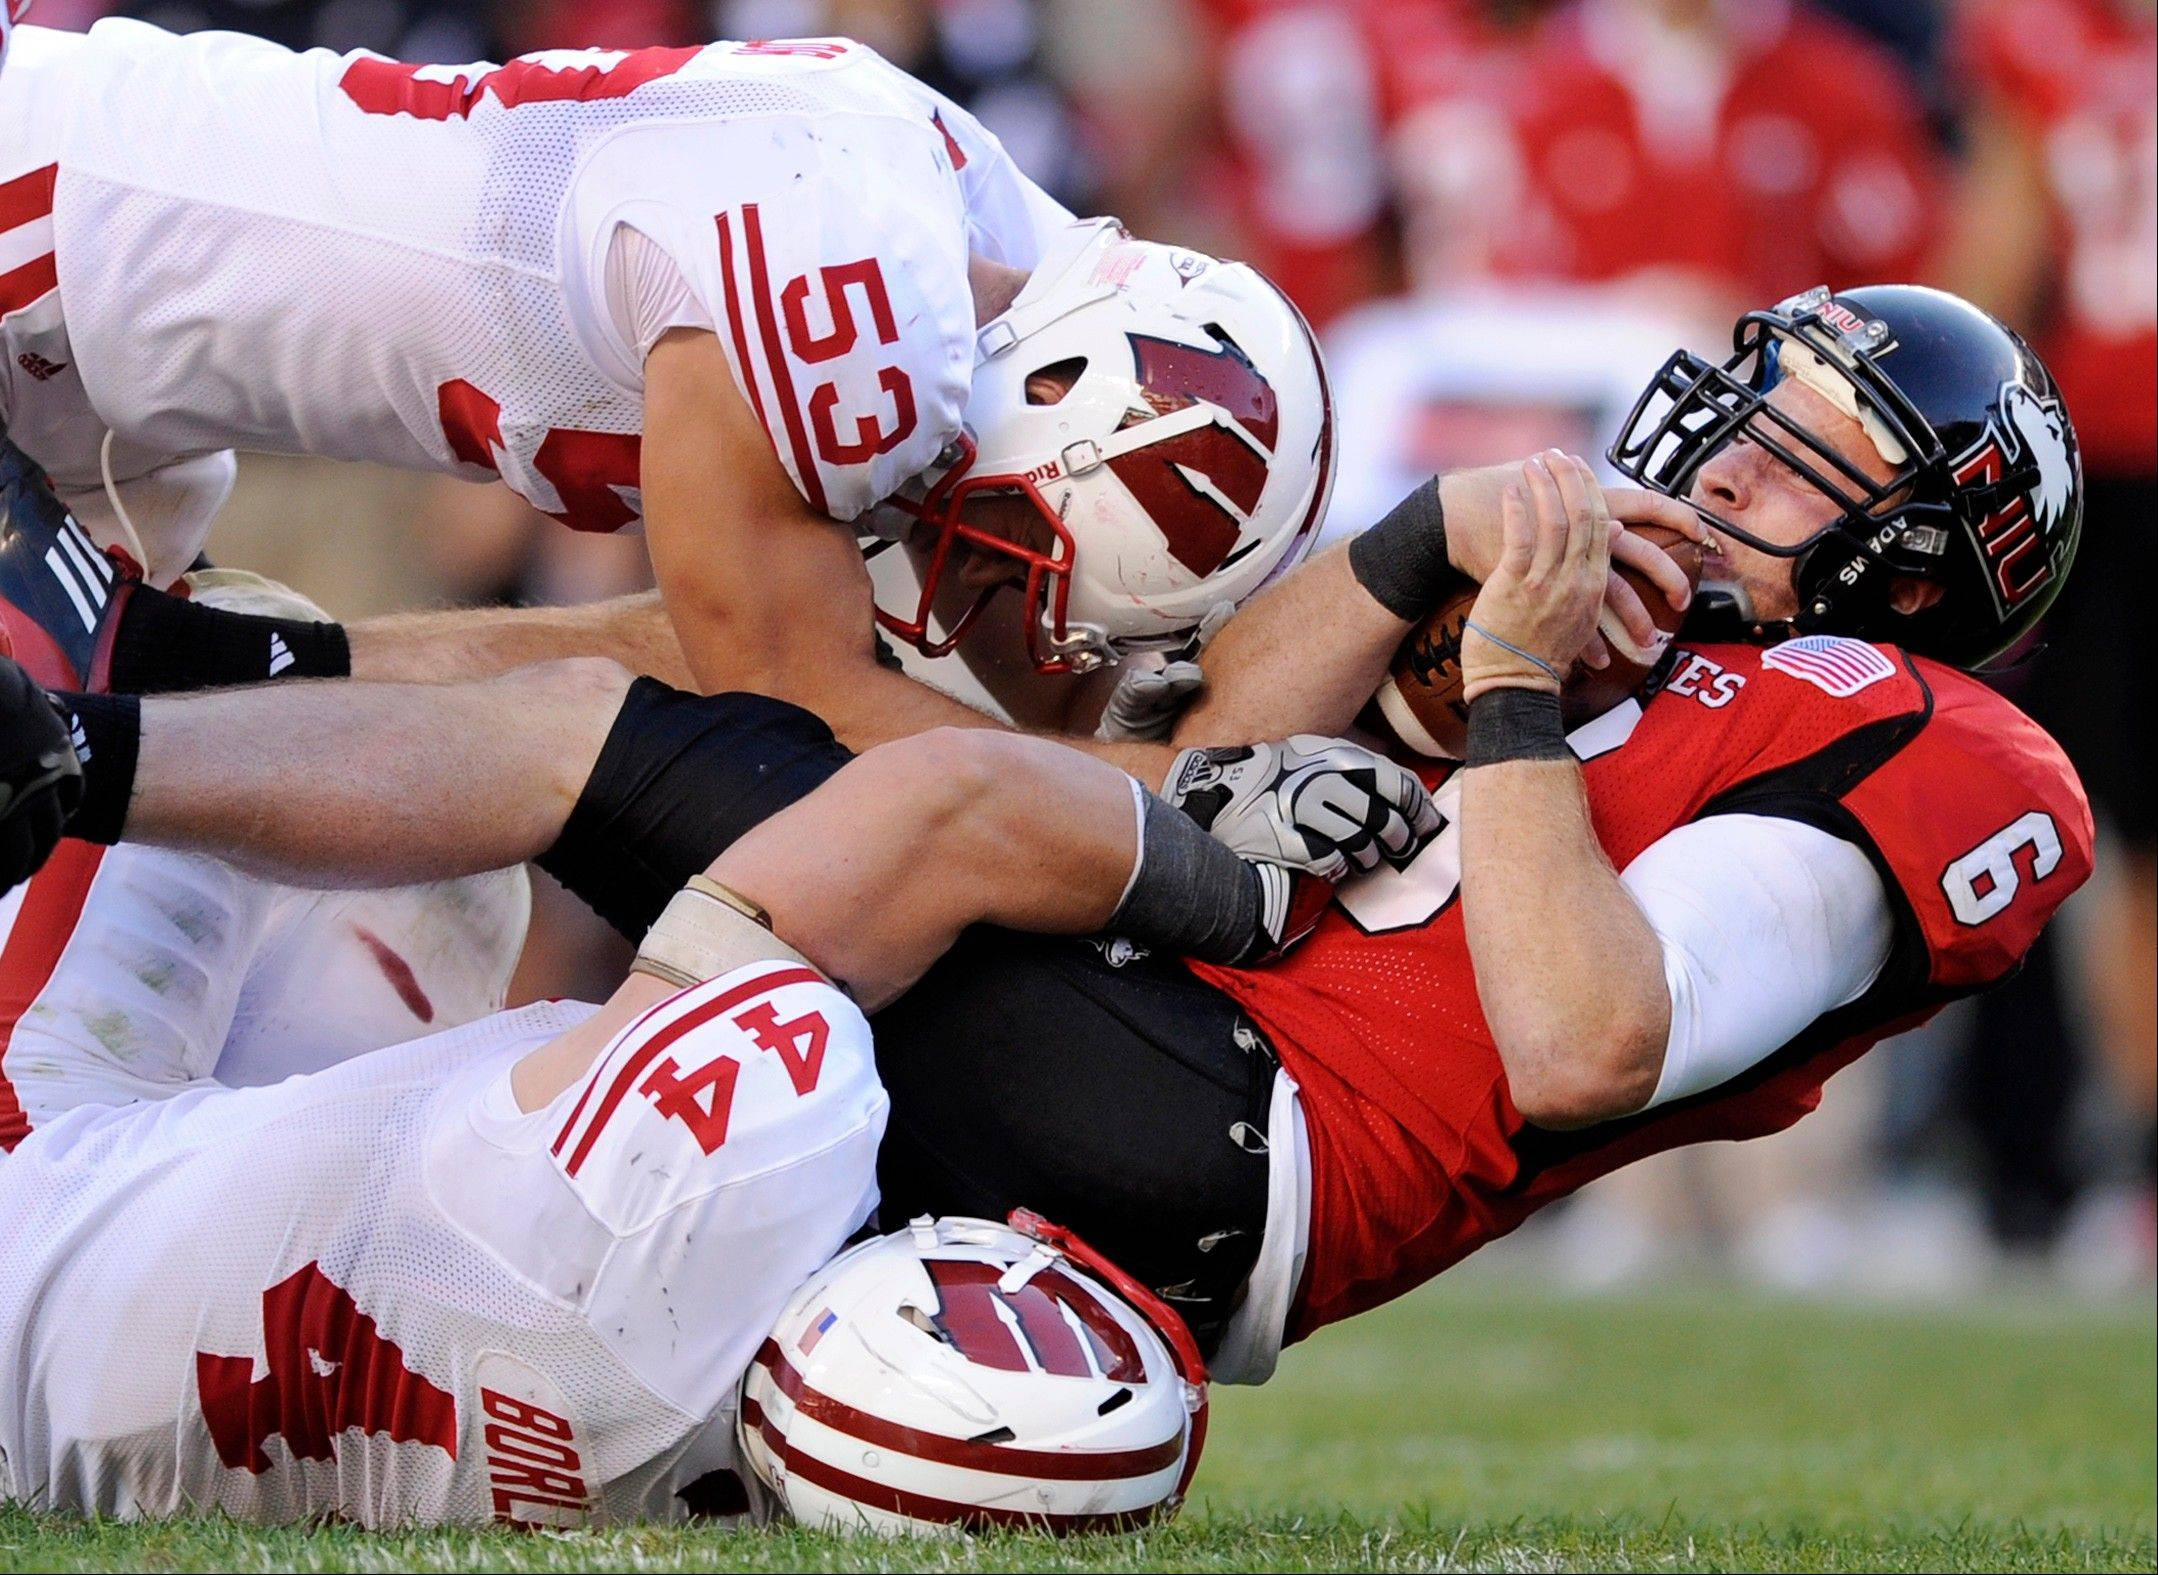 Northern Illinois quarterback Jordan Lynch got a rude awakeing last season against Wisconsin when he was brought down in the fourth quarter of their game. He'll be the starter Sept. 1 against Iowa at Soldier Field.